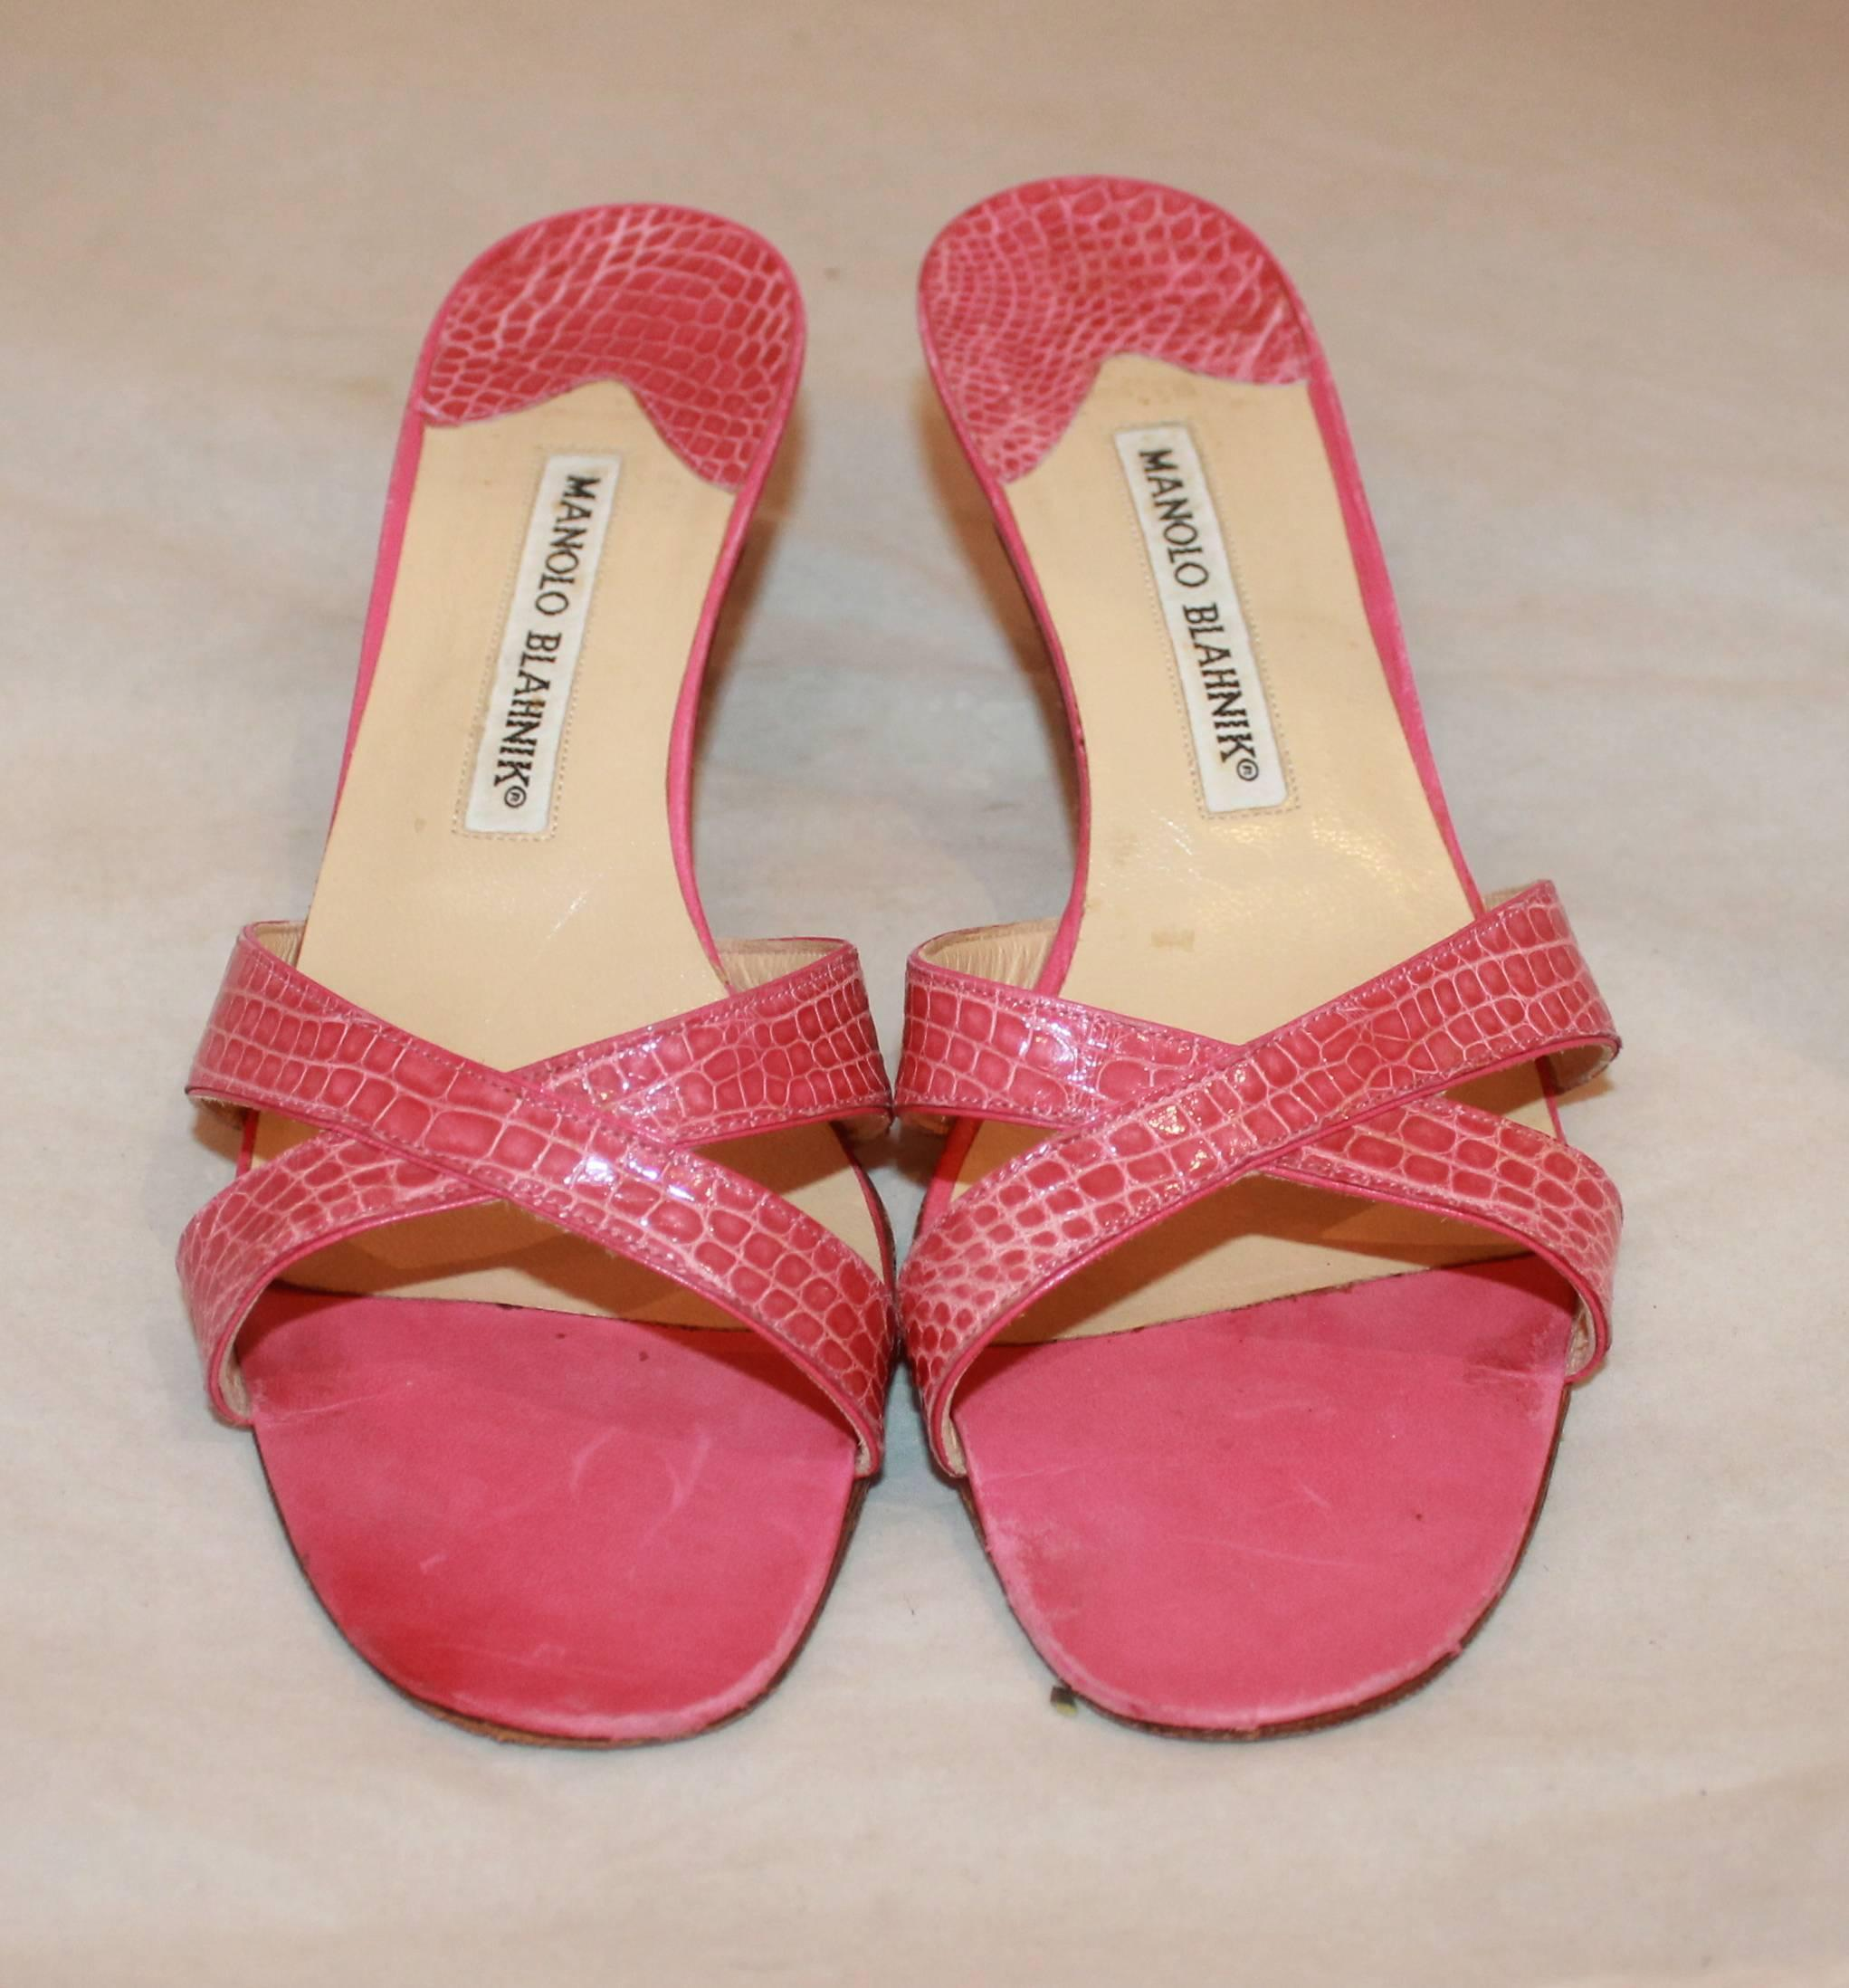 ba89bcc26a2 Manolo Blahnik Pink Croc Crisscross Slide with Heel - 38.5 For Sale at  1stdibs